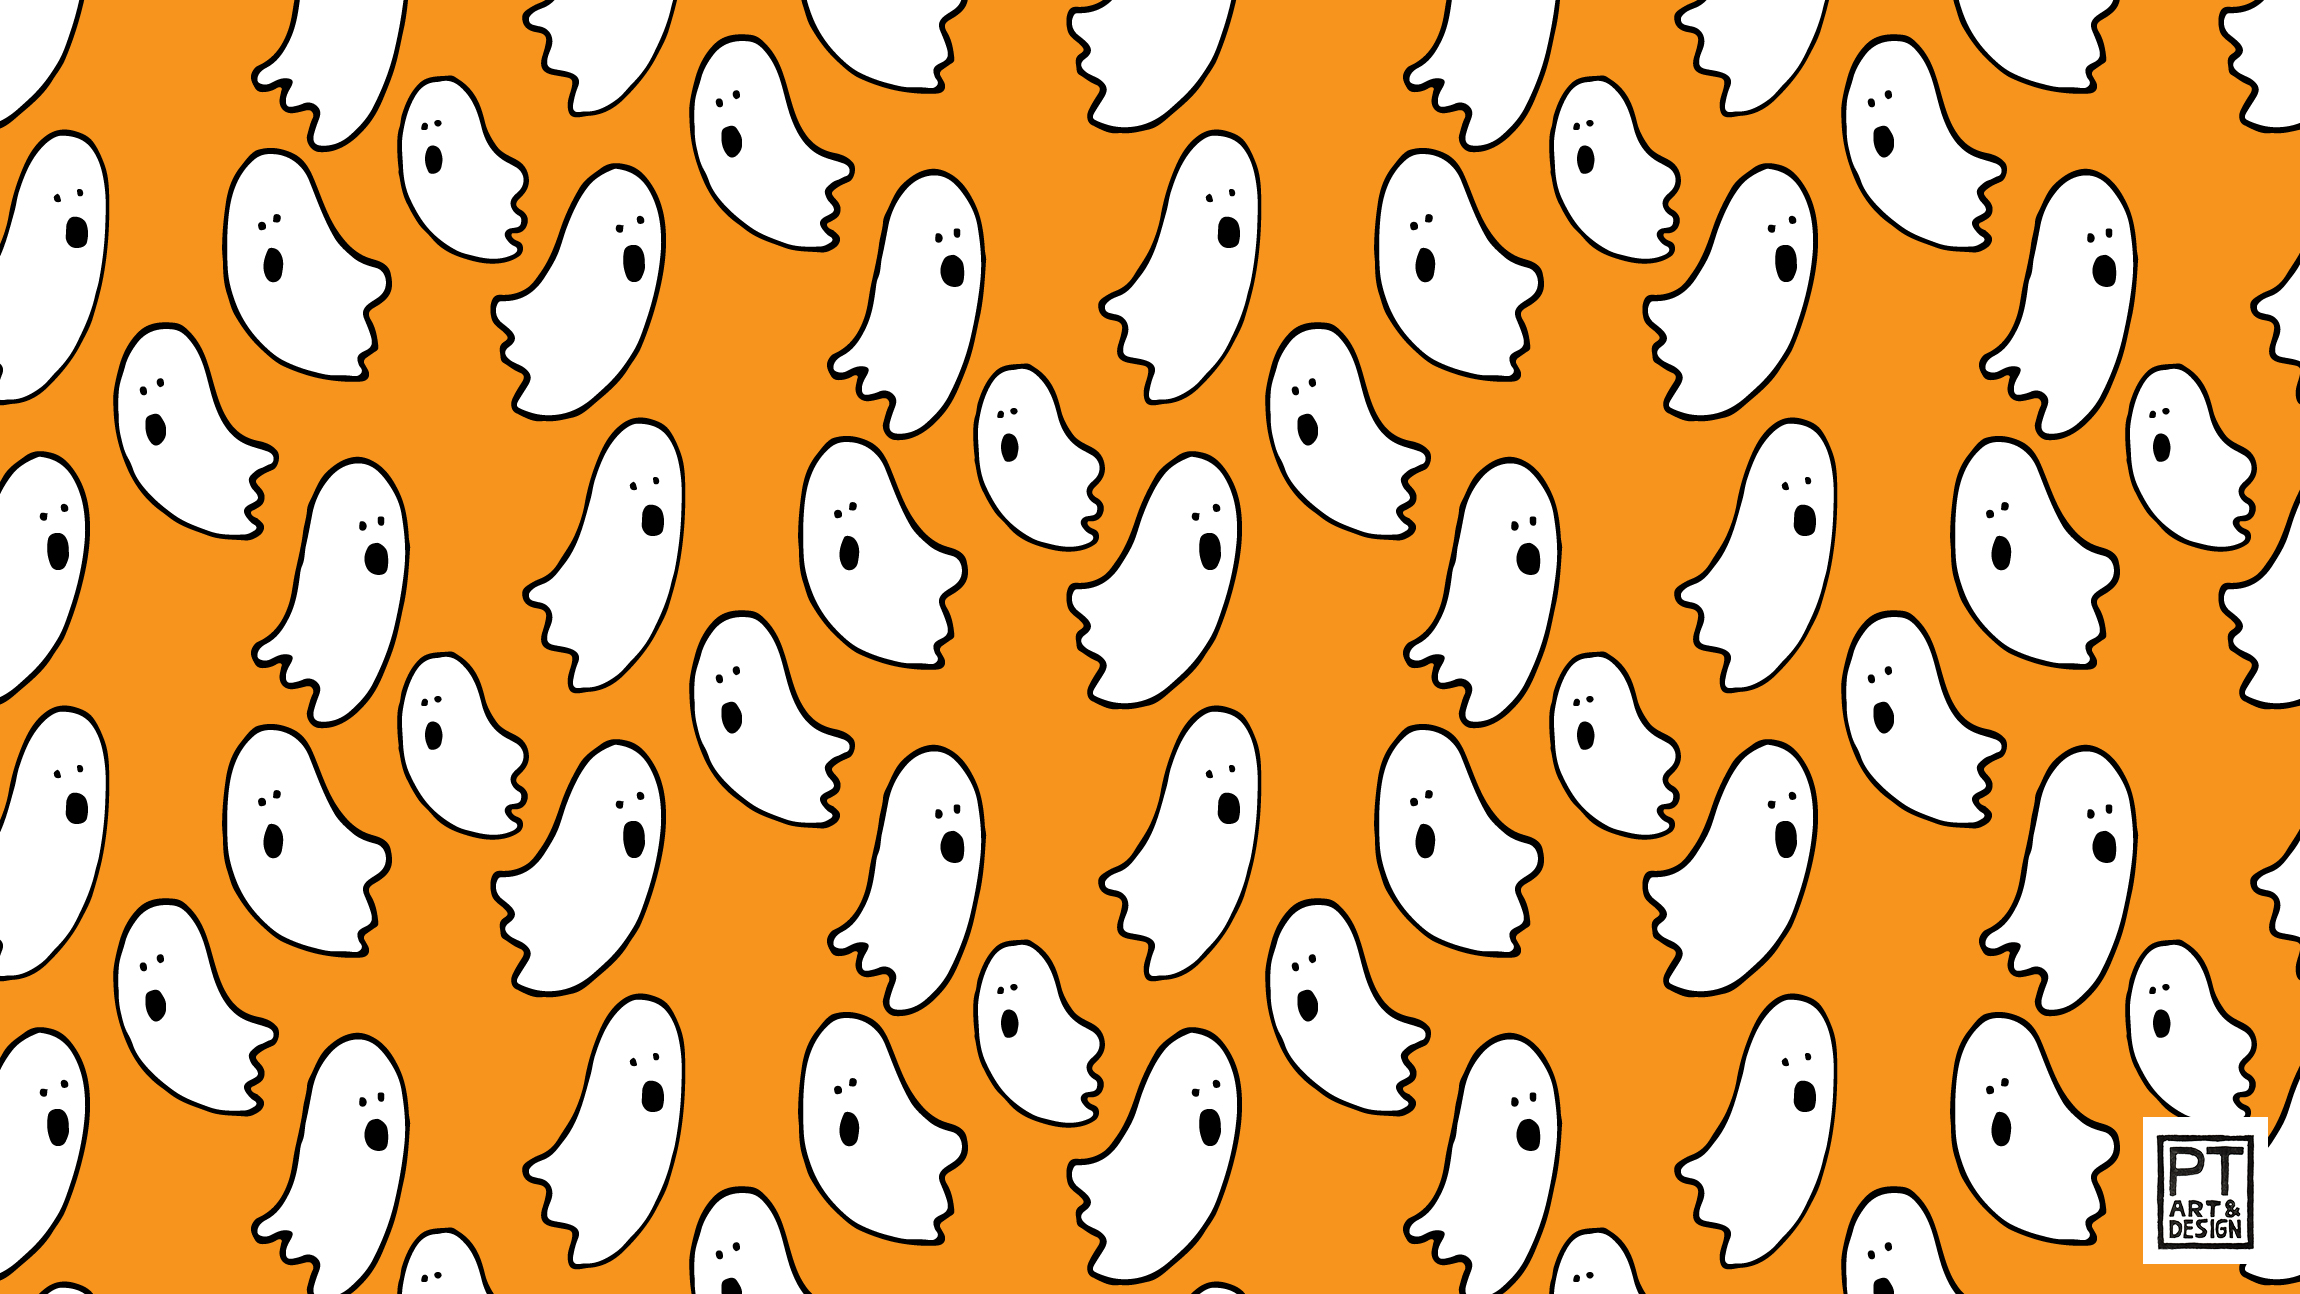 White ghosts on orange background